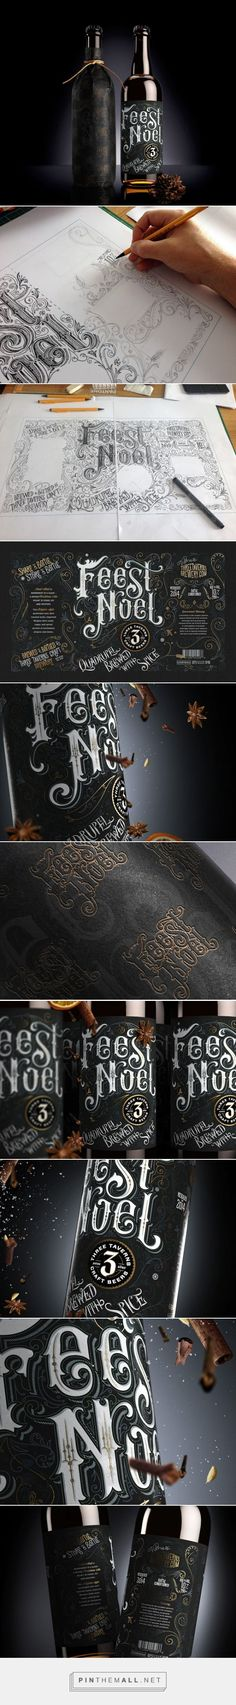 Feest Noel #ale #packaging designed by Anton Burmistrov - http://www.packagingoftheworld.com/2015/03/feest-noel.html: (Gin Bottle Sketch)